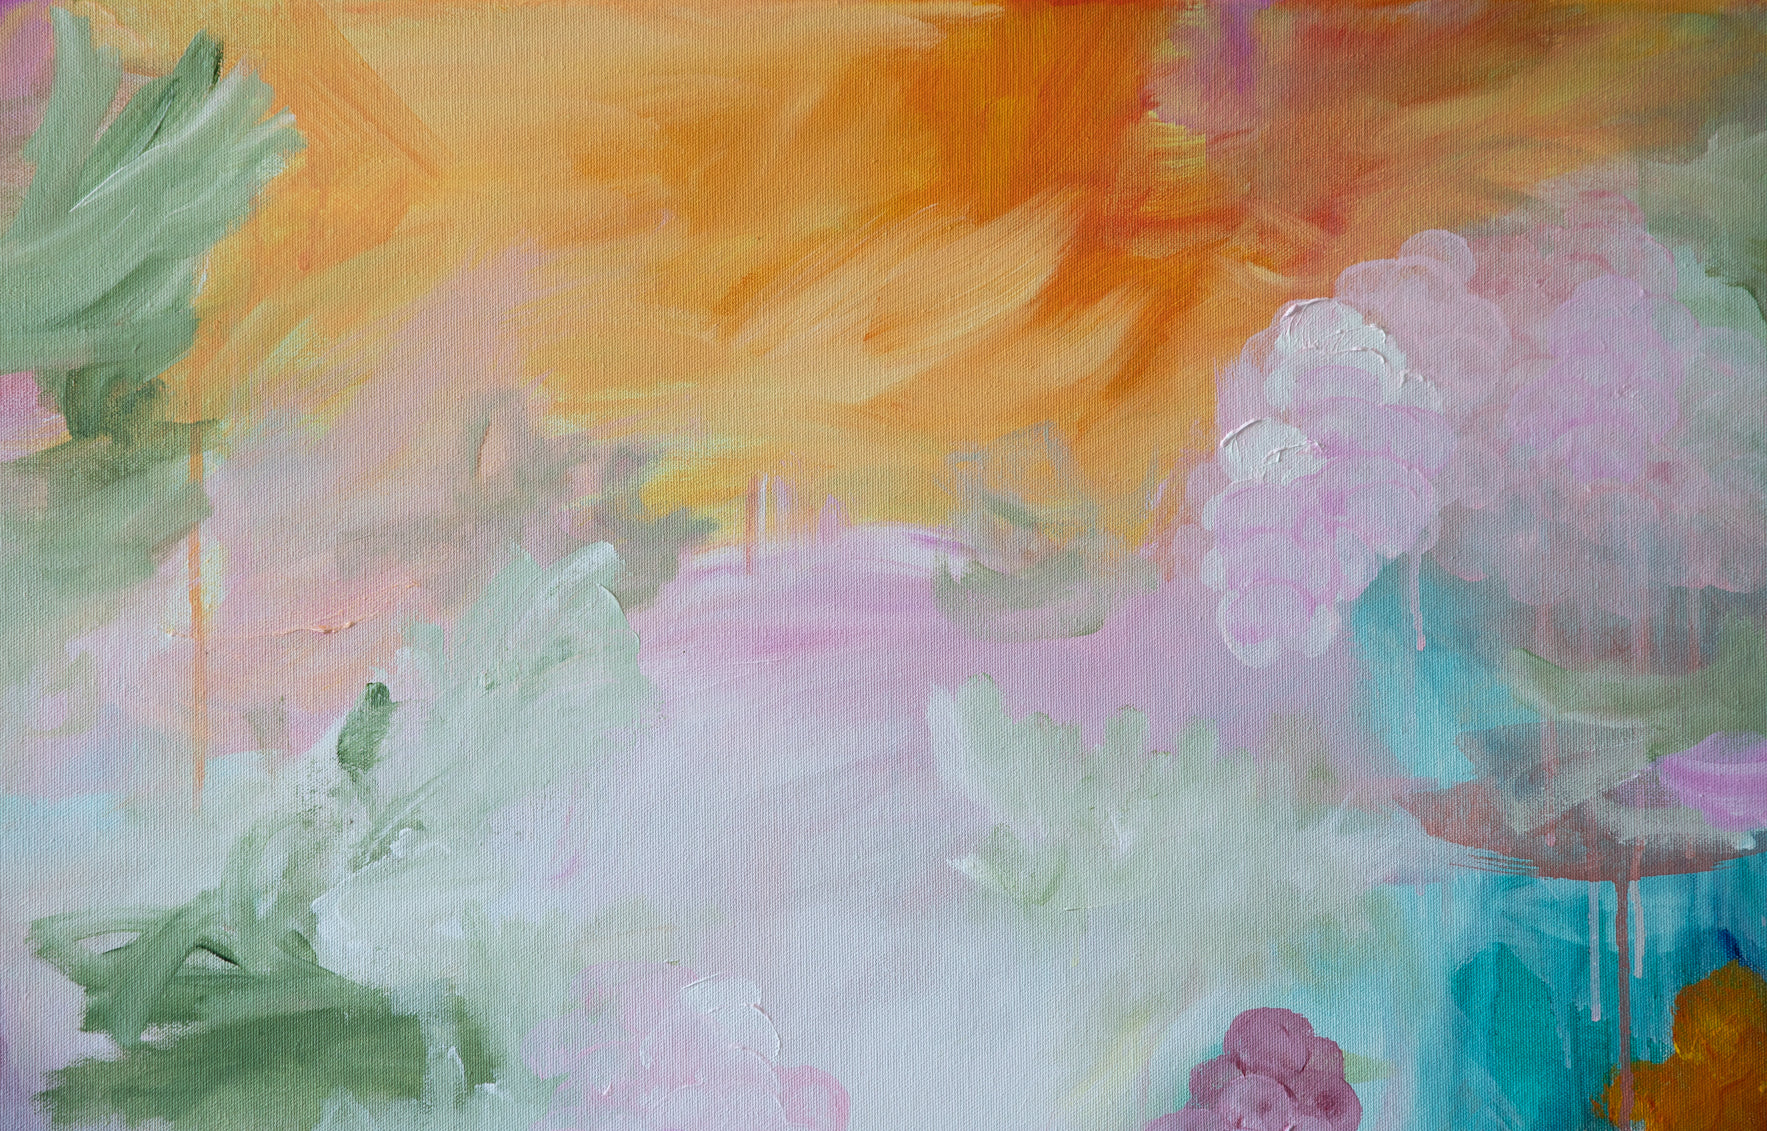 Shamelessly blooming Acrylic on canvas - Sanni Olasvuori